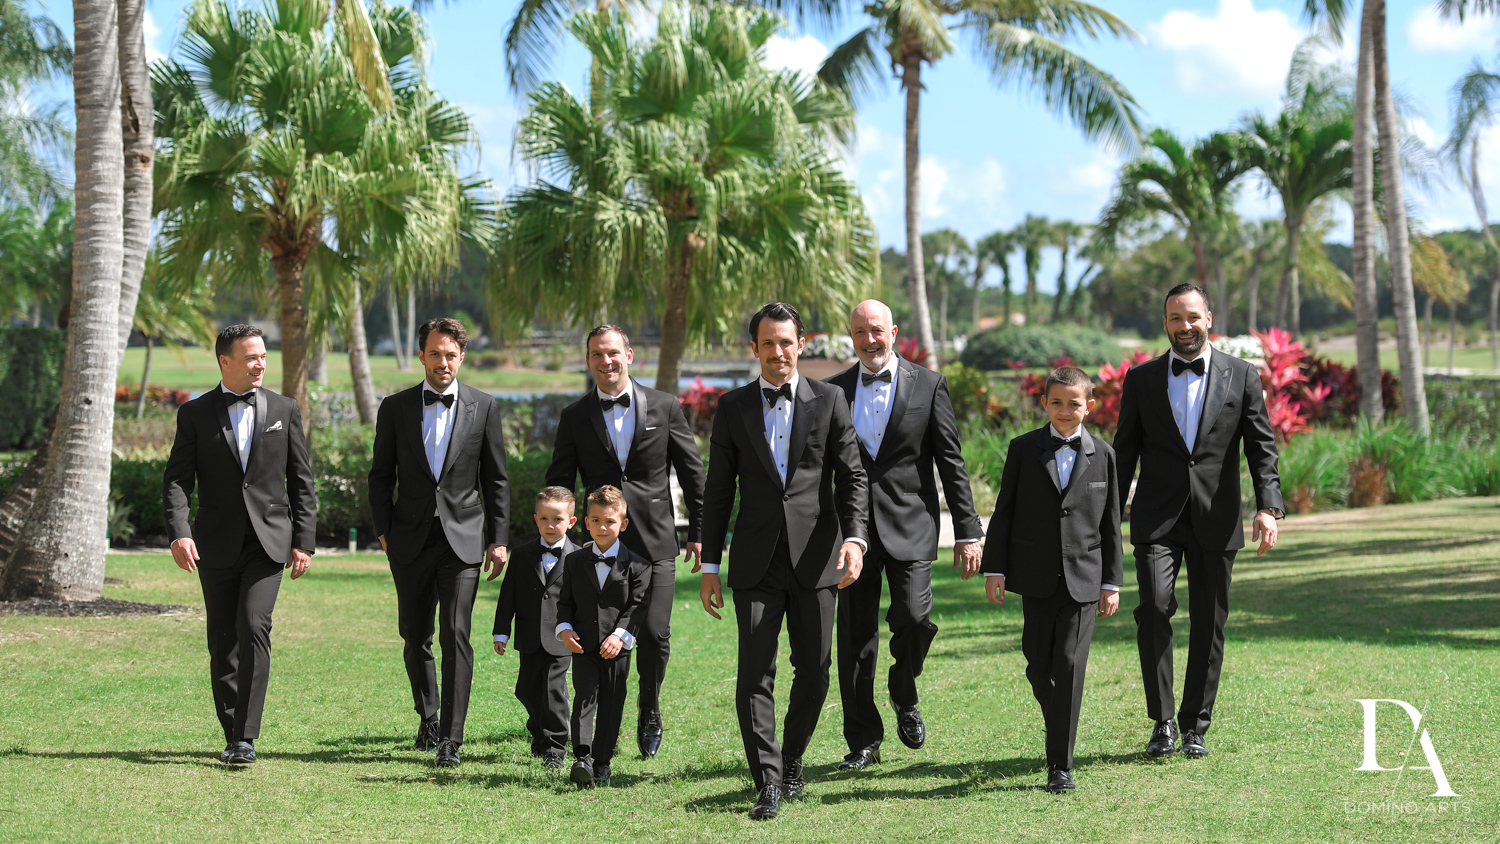 groomsmen portrait at Stunning Golf Course Wedding at PGA National Palm Beach by Domino Arts Photography